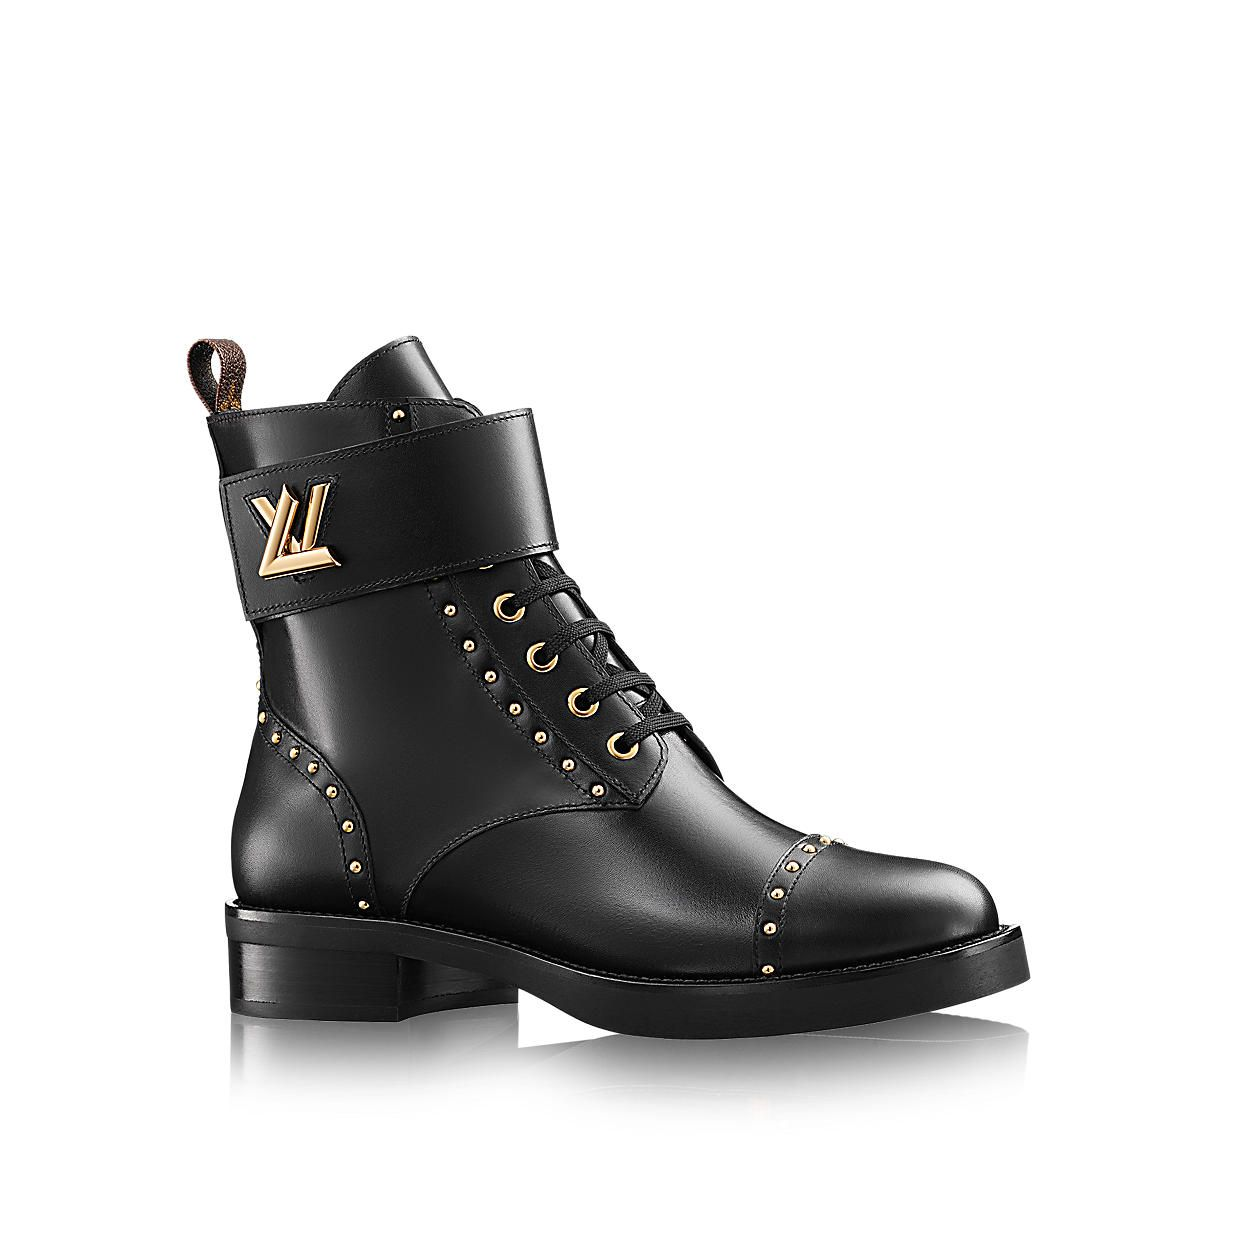 Rockabily Ranger in WOMEN s SHOES collections by Louis Vuitton . ac8b142cf33